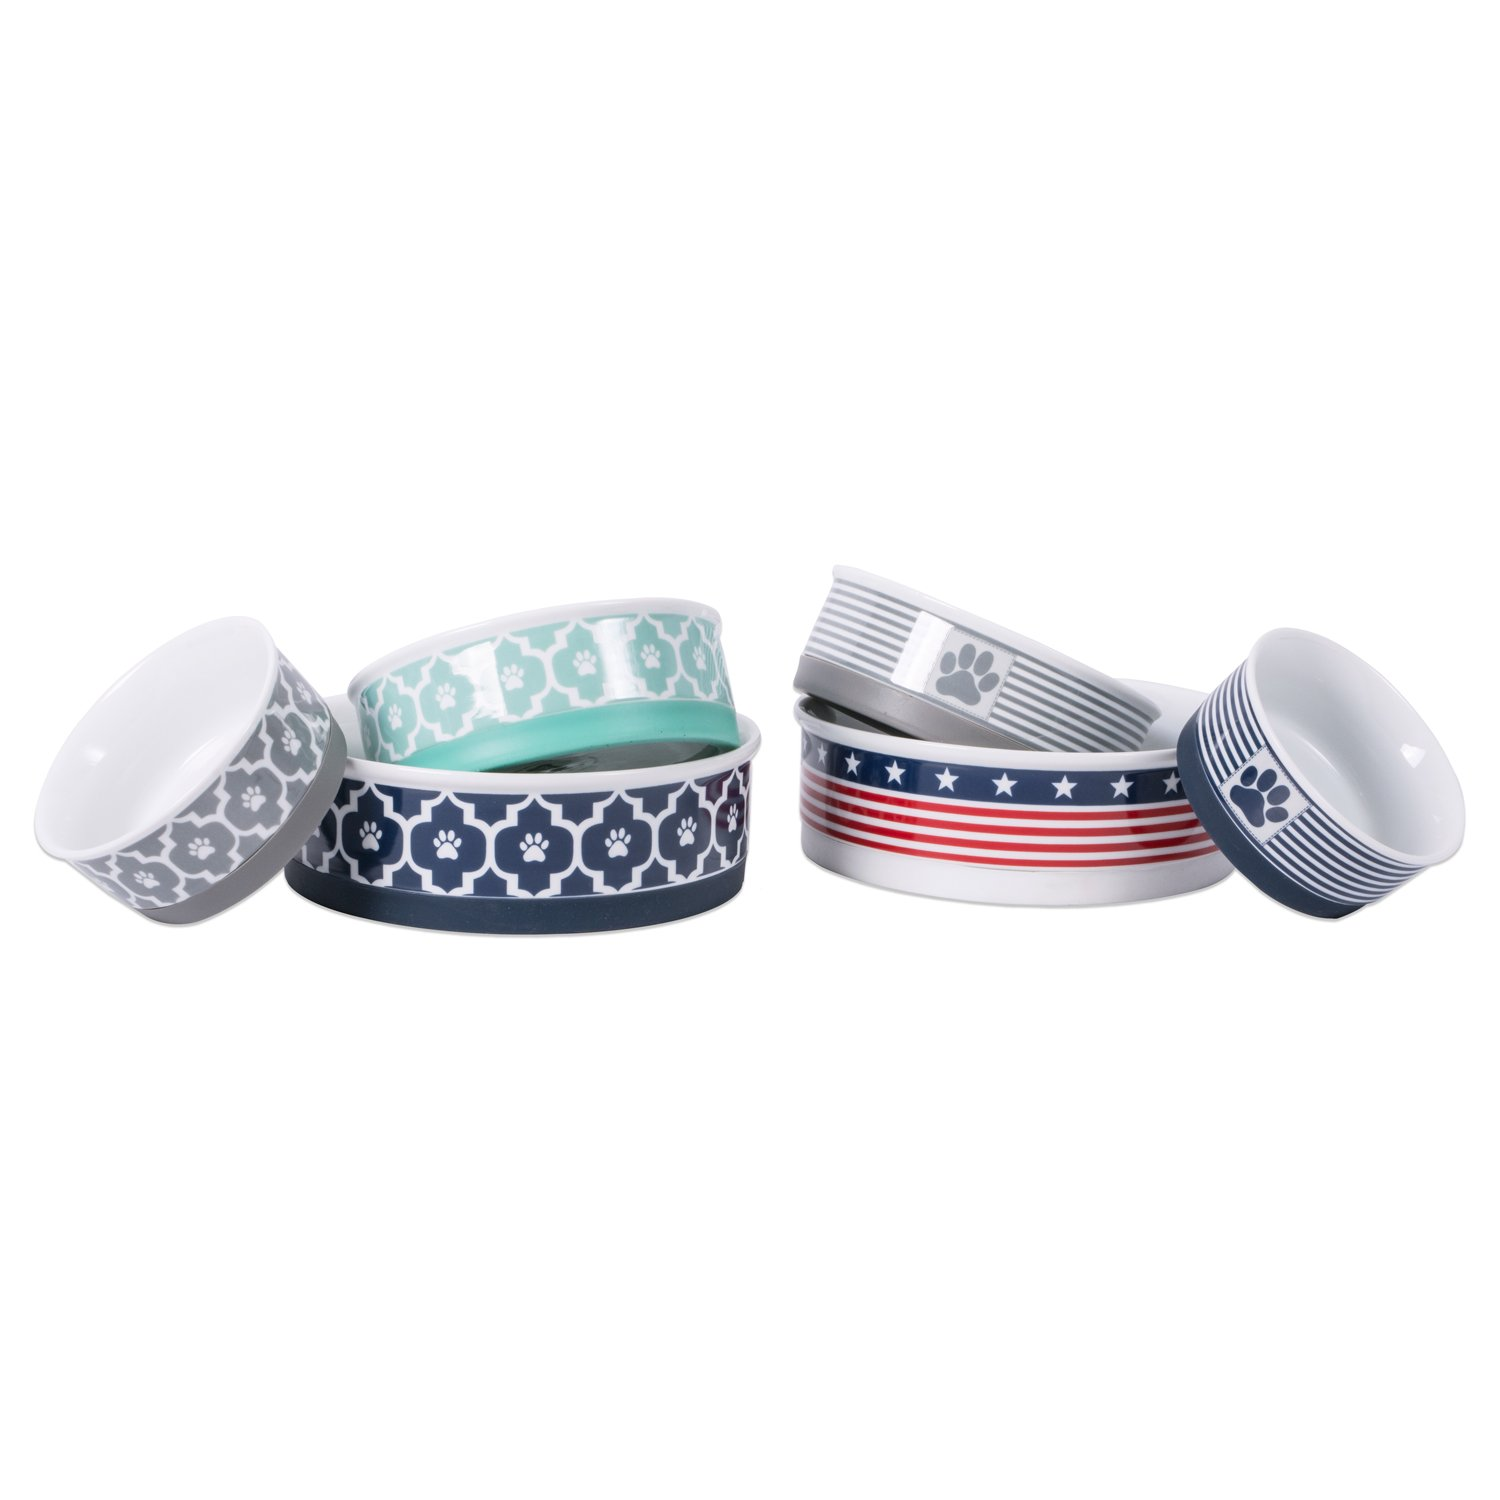 Bone Dry DII Patriotic Ceramic Pet Bowl for Food & Water with Non-Skid Silicone Rim for Dogs and Cats (Large - 7.5'' Dia x 4'' H) Stars and Stripes by Bone Dry (Image #7)